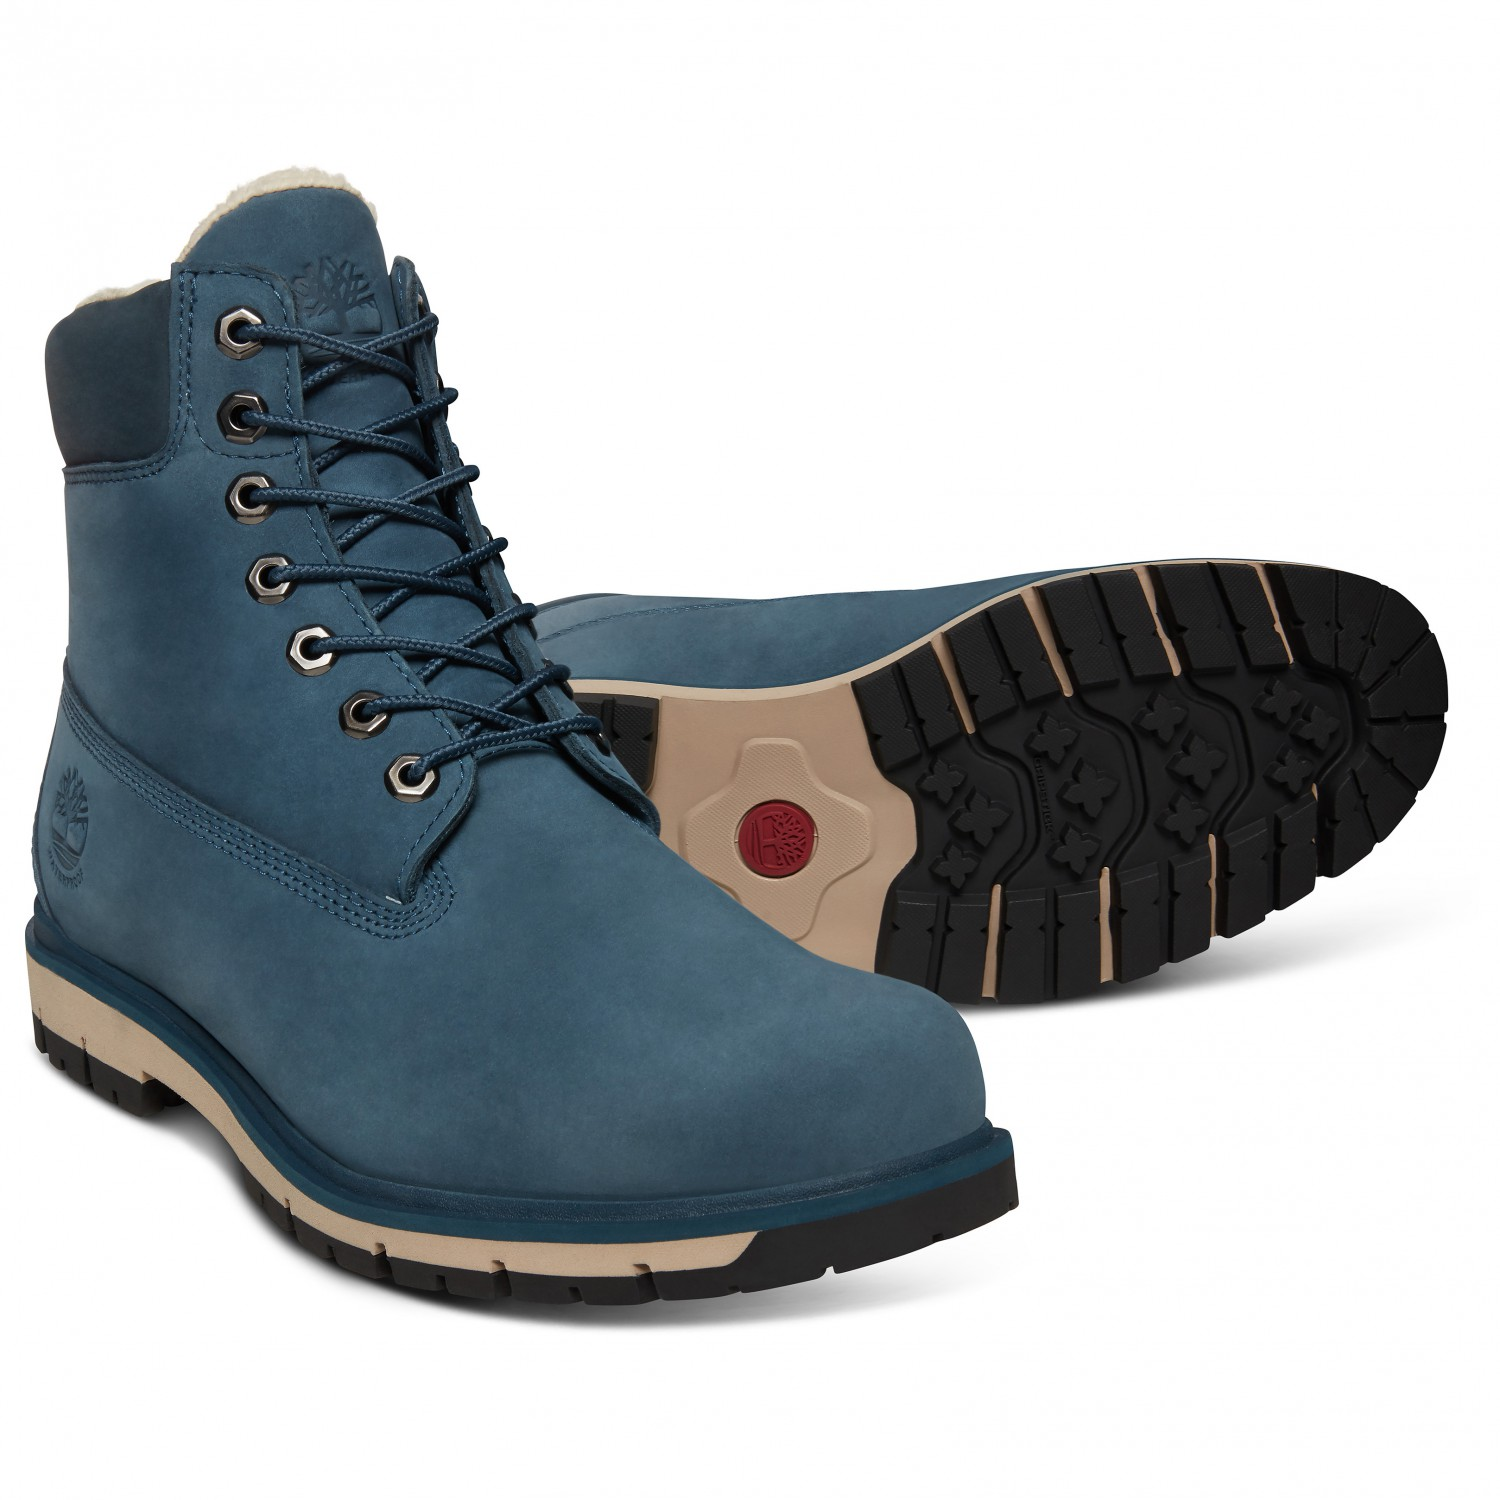 Chaussure Linedboot WP Warm Homme d'hiver Radford Timberland qUwvCxFU